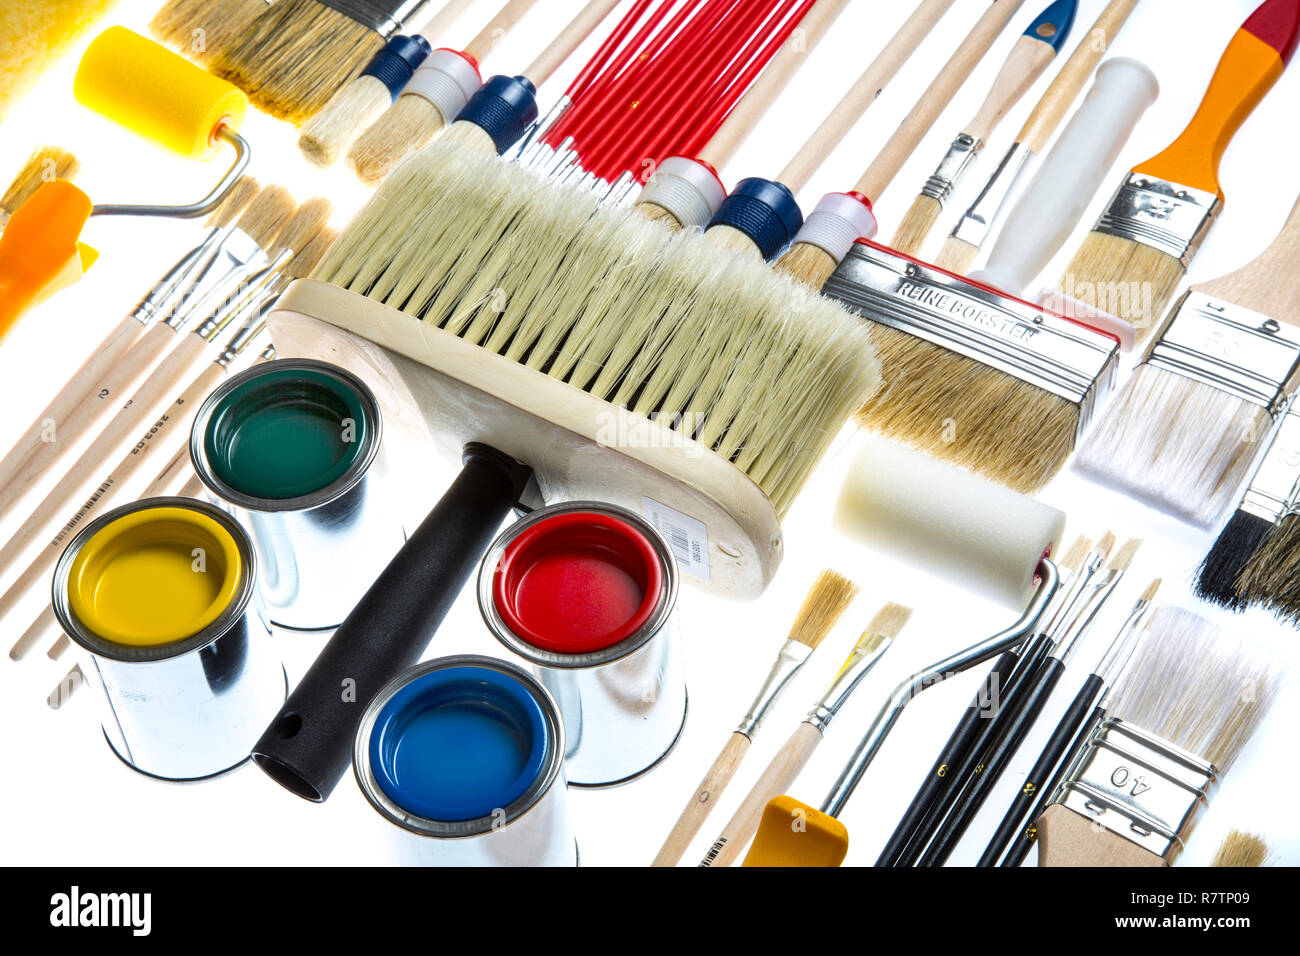 Brush Rollers Stock Photos & Brush Rollers Stock Images - Alamy